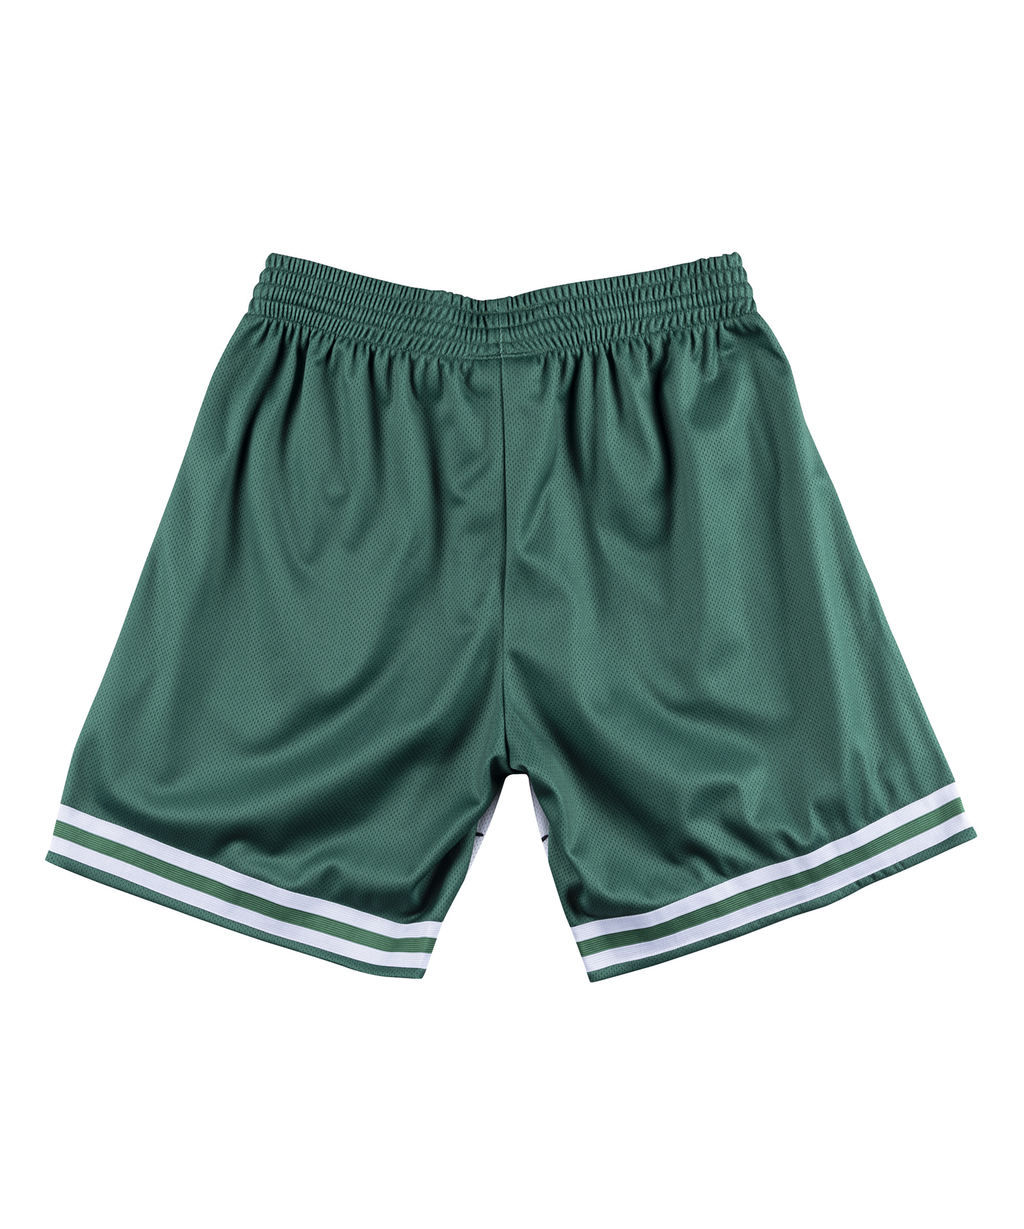 Boston Celtics Big Face Shorts 1985